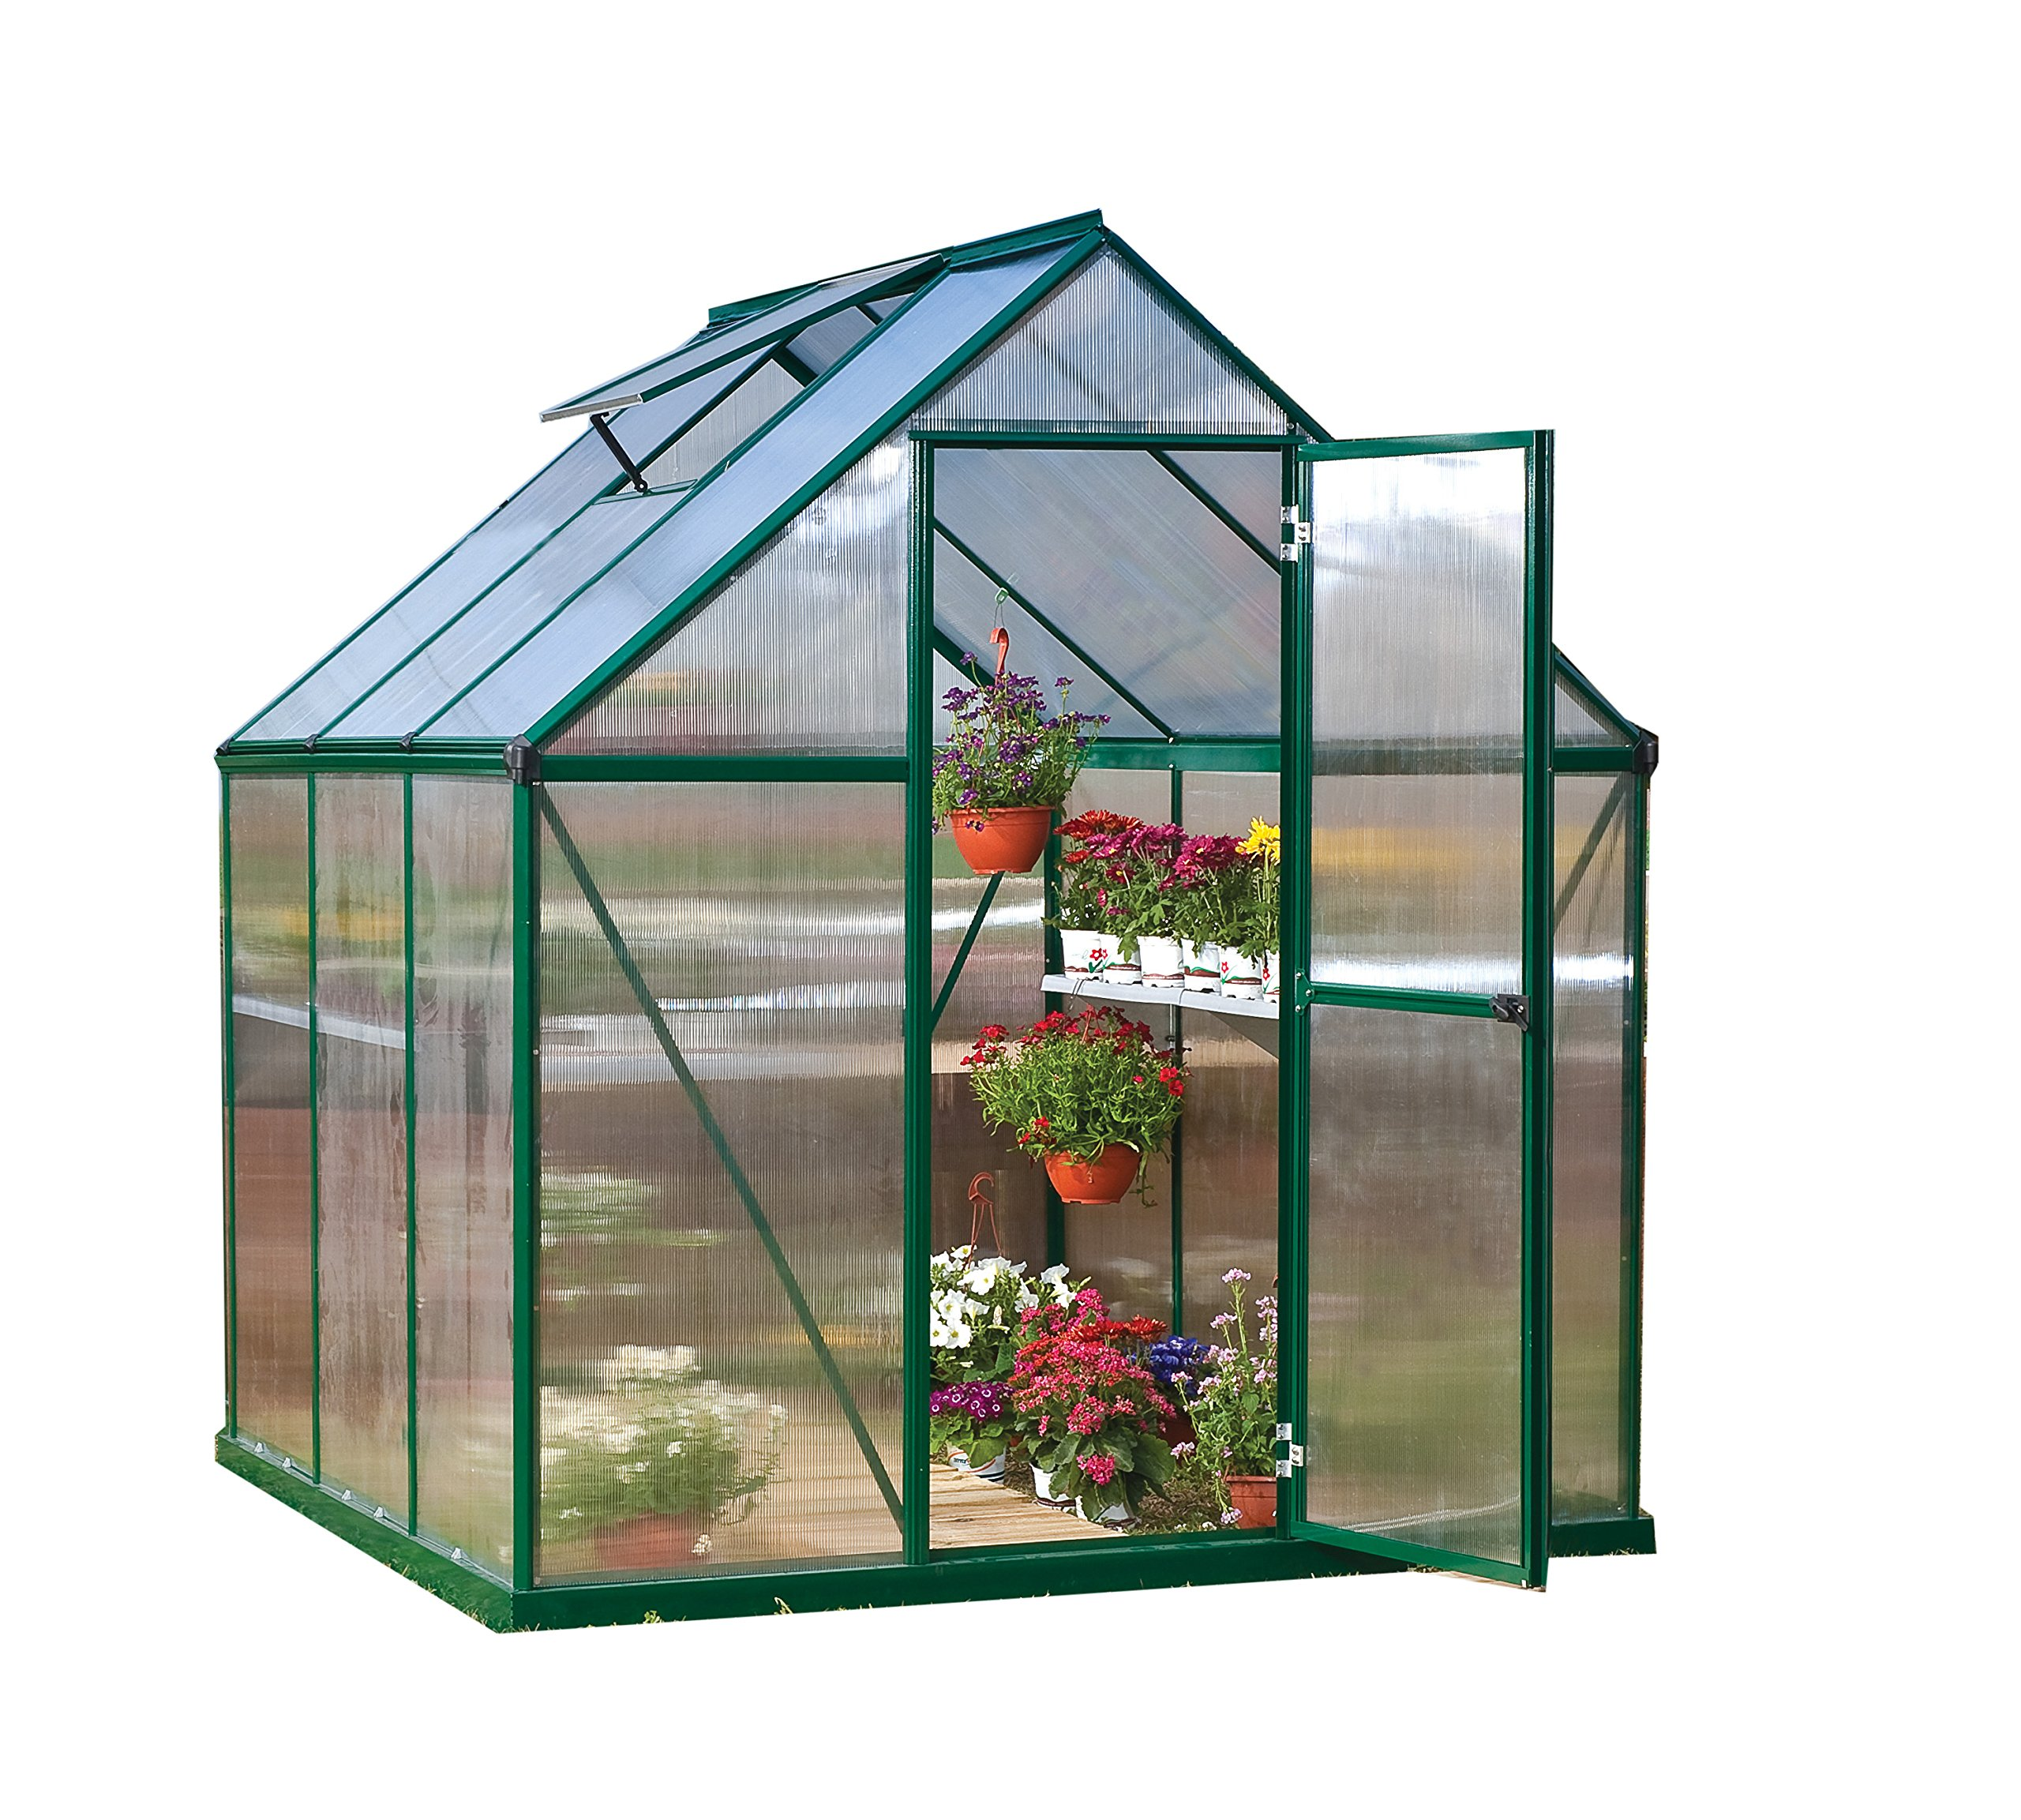 Palram Nature Series Mythos Hobby Greenhouse - 6' x 6' x 7', Forest Green by Palram